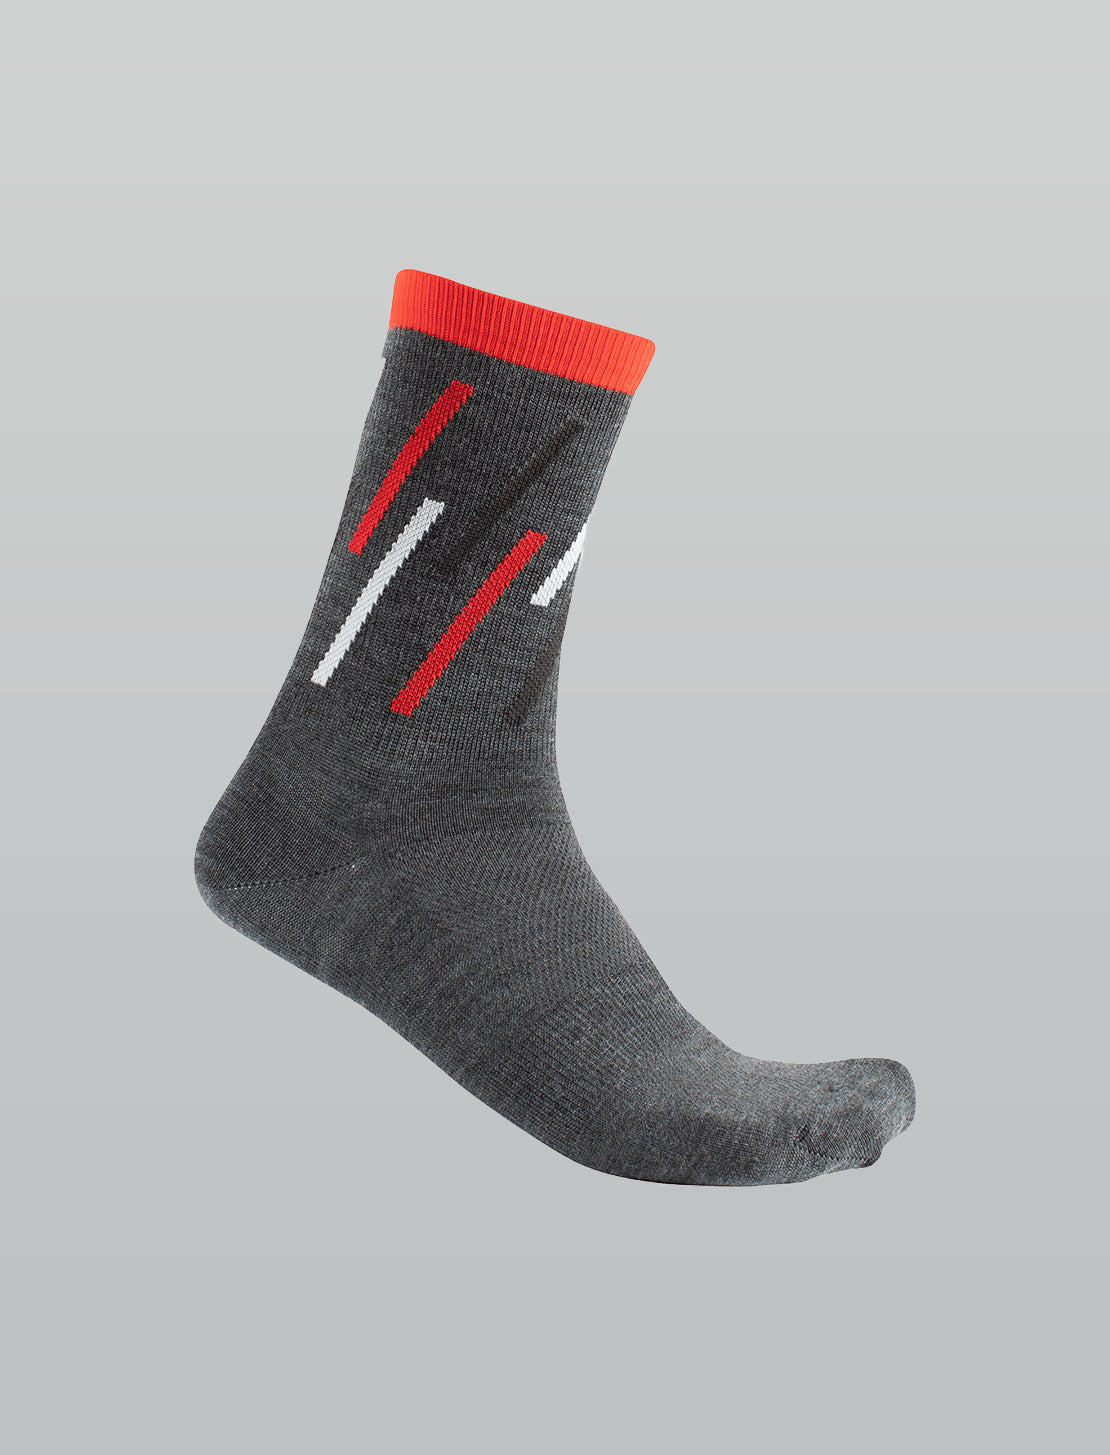 Merino Winter Socks - Charcoal/Fire Red